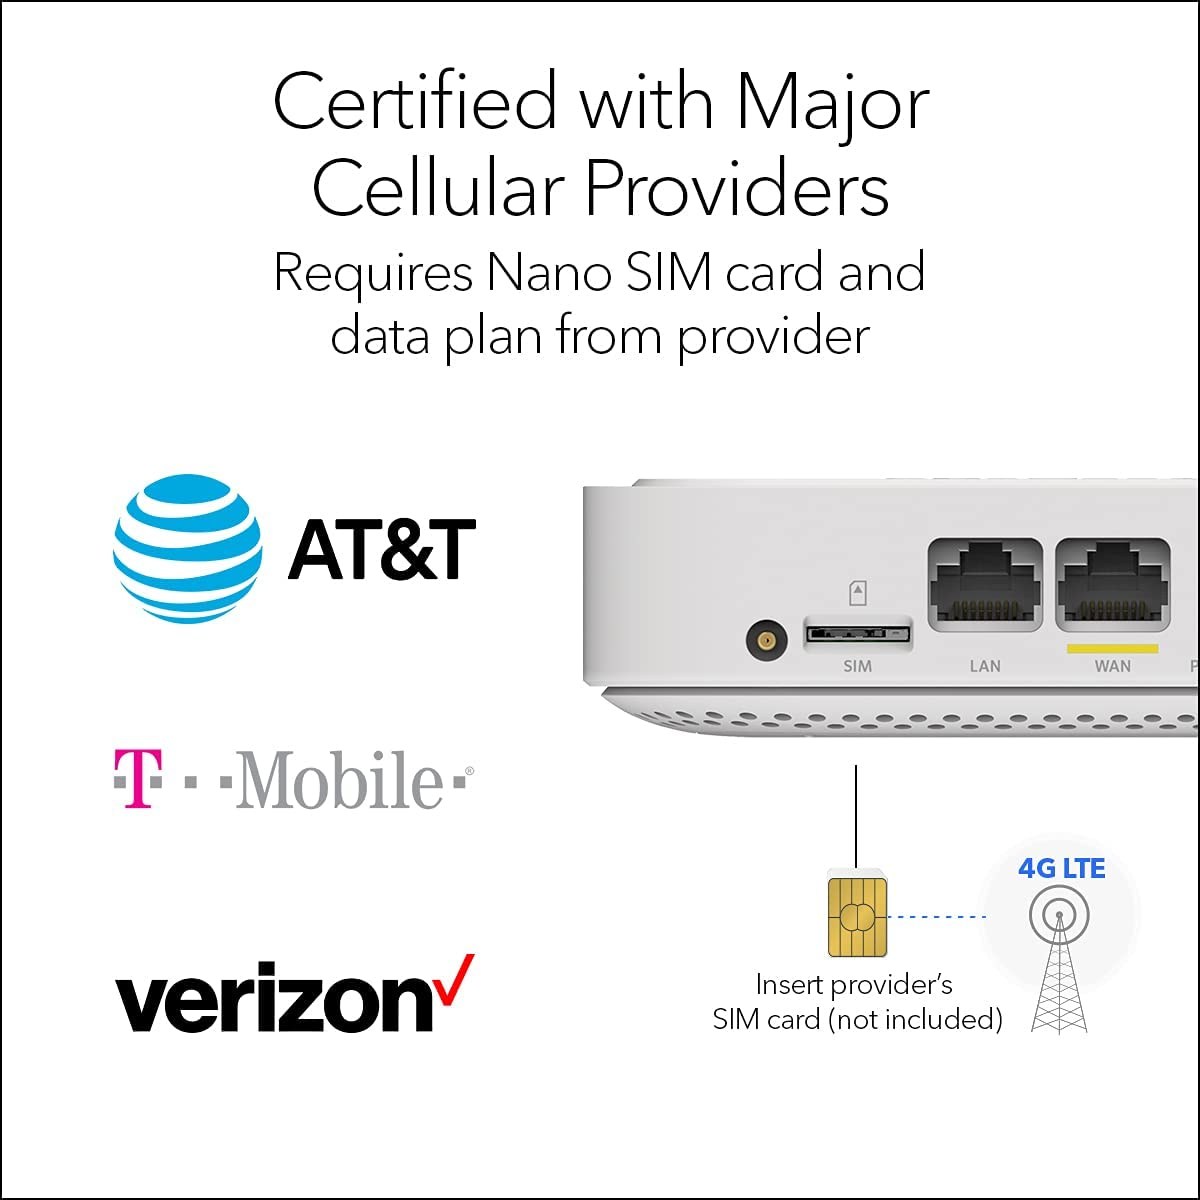 NETGEAR 4G LTE Broadband Modem (LM1200) – Use LTE as a Primary Internet Connection | Certified with AT&T, T-Mobile & Verizon